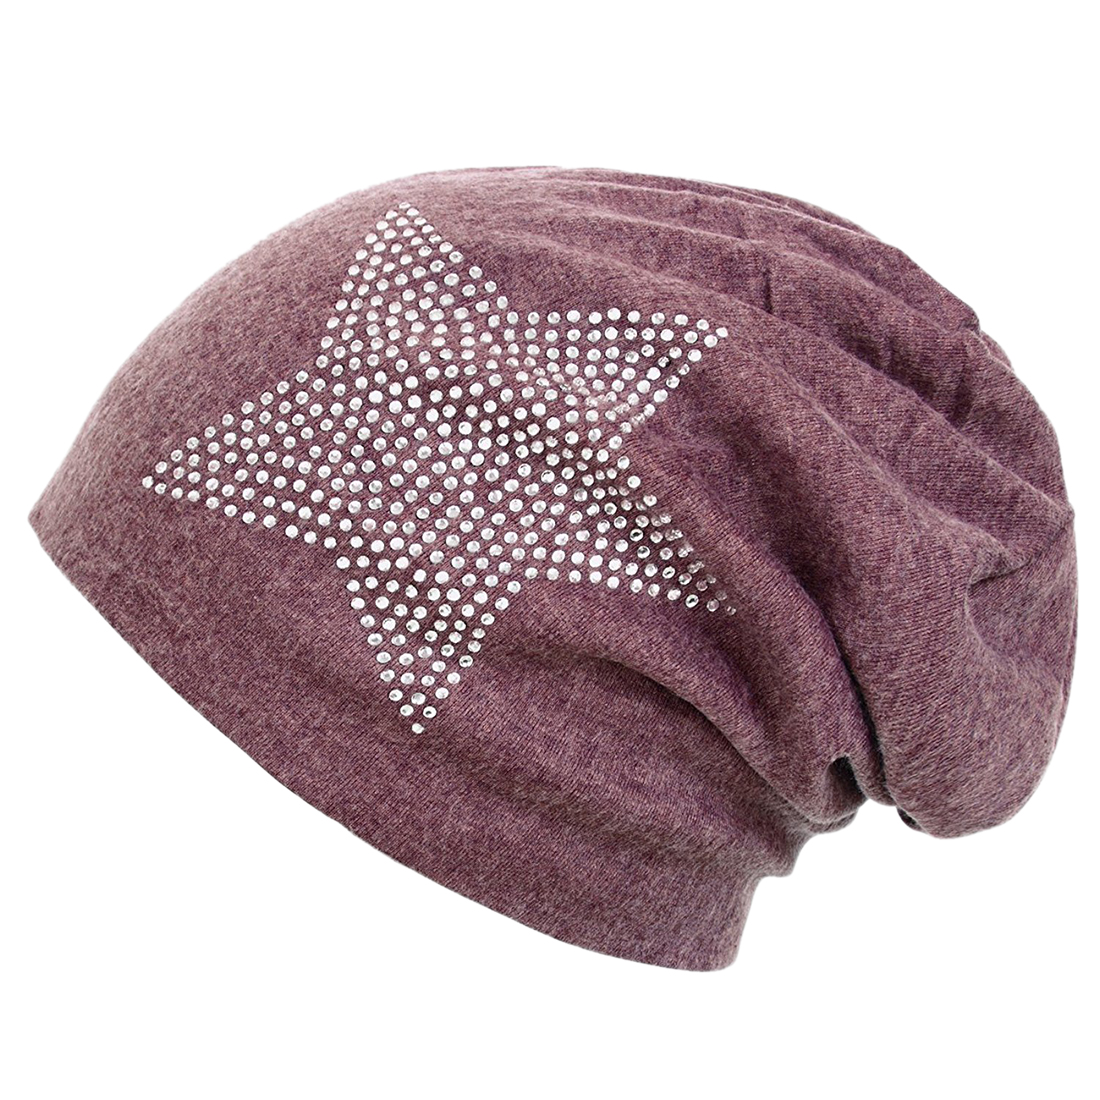 Unisex Men Women Classic Star Rhinestone Slouch Beanie Cap Cotton Hat wine Red One Size